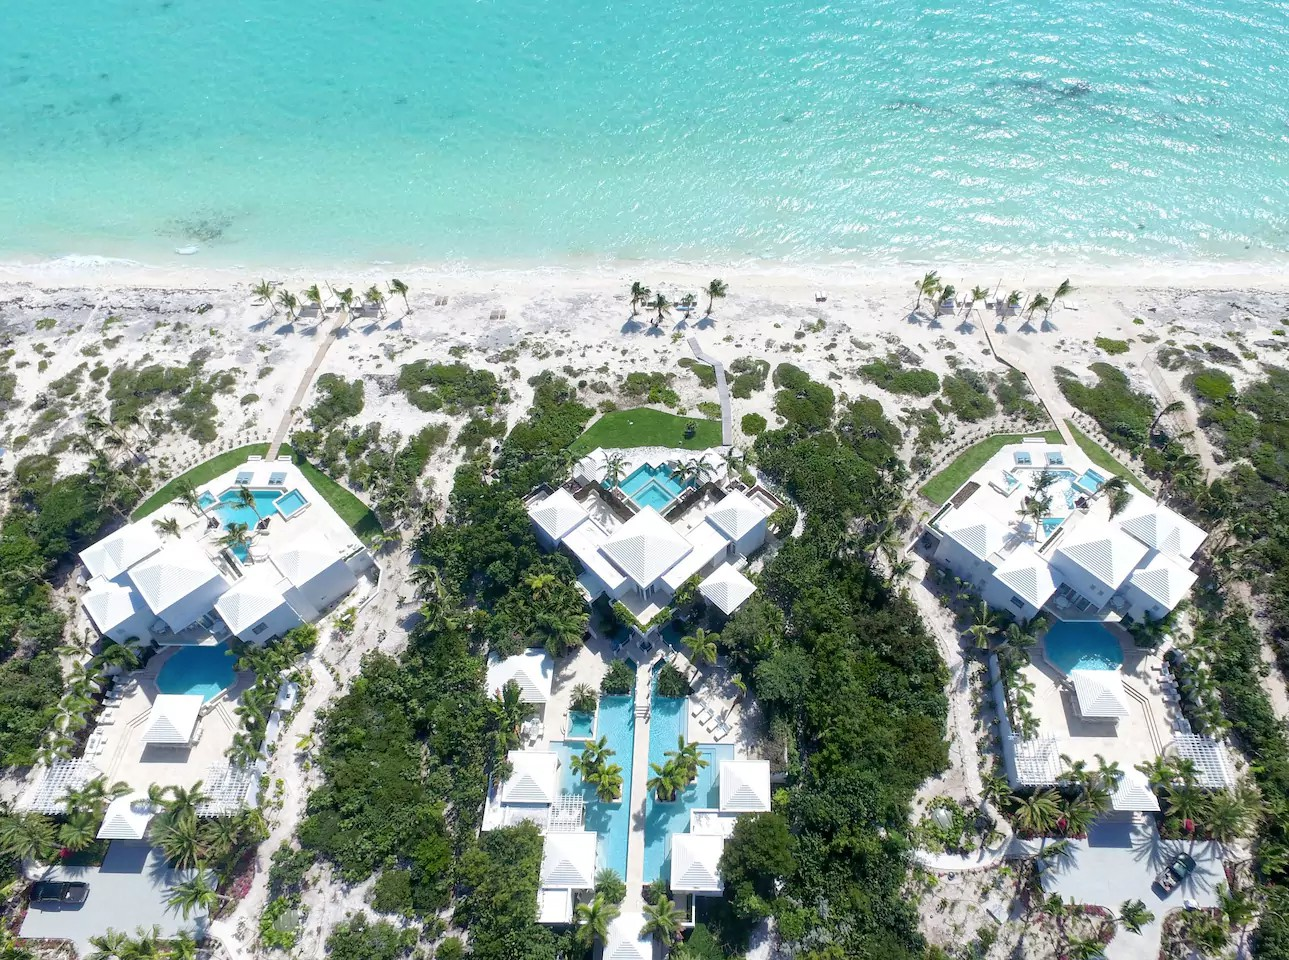 Kylie Jenner's Turks and Caicos Airbnb Mansion